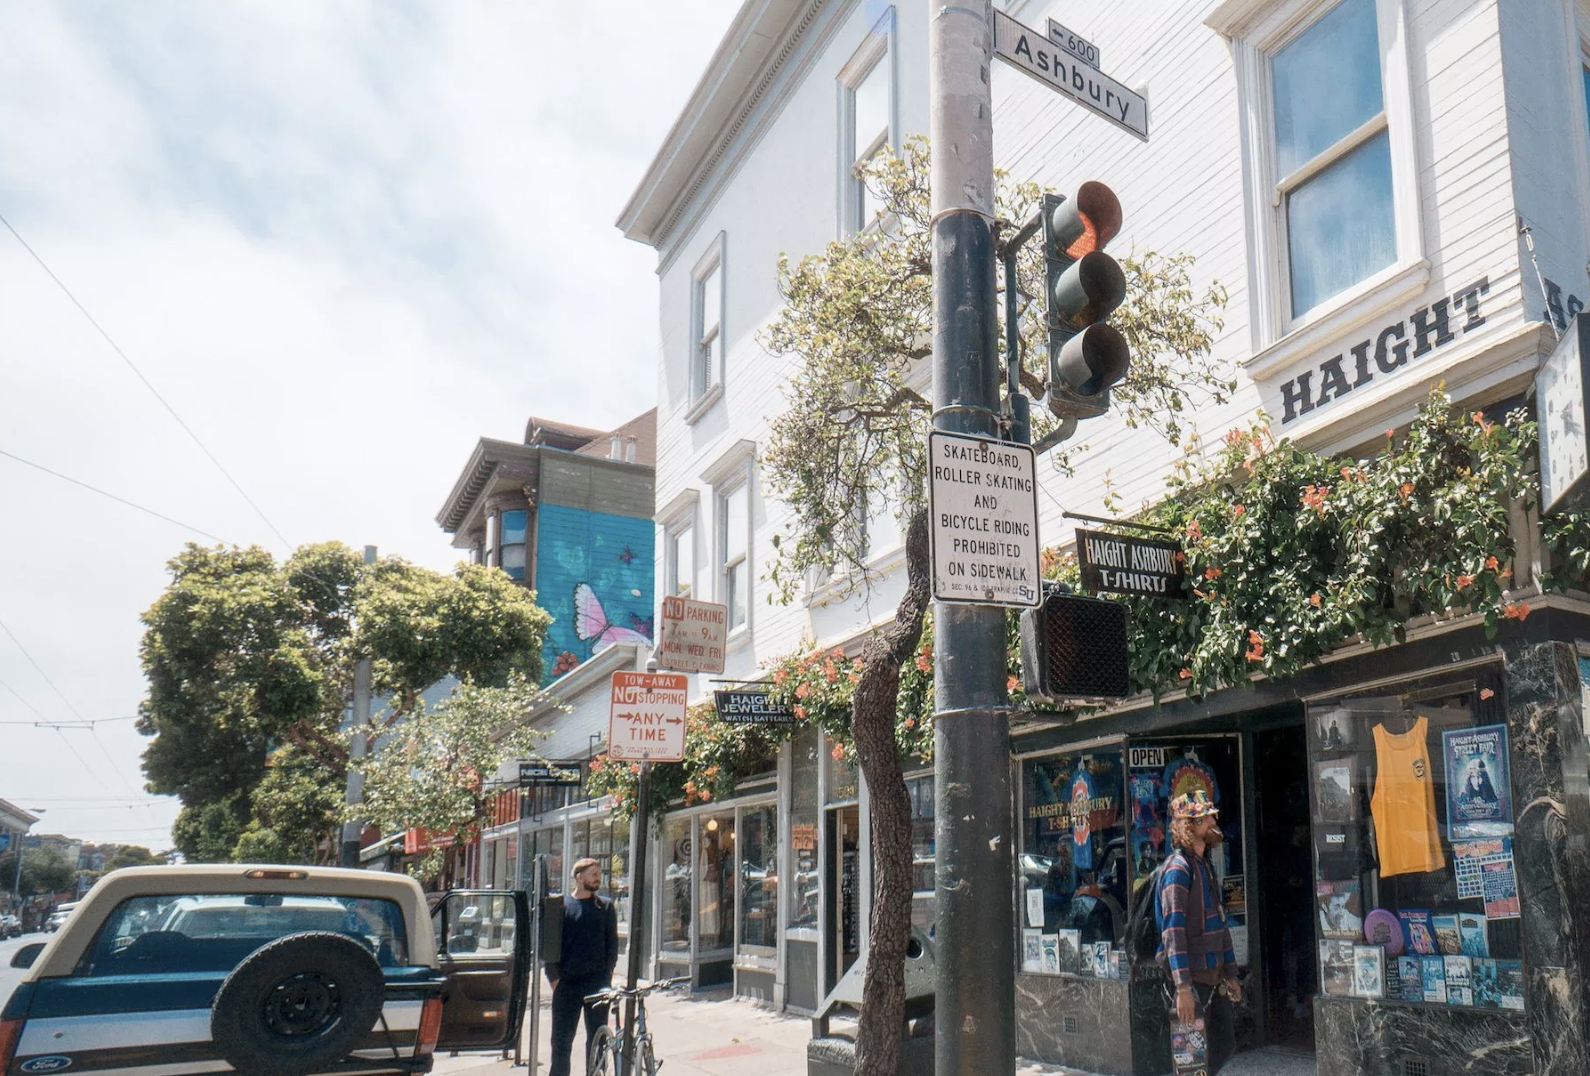 Haight Ashbury District Walking Tour  Walking tour through the epicenter of 1960s hippie counterculture and music